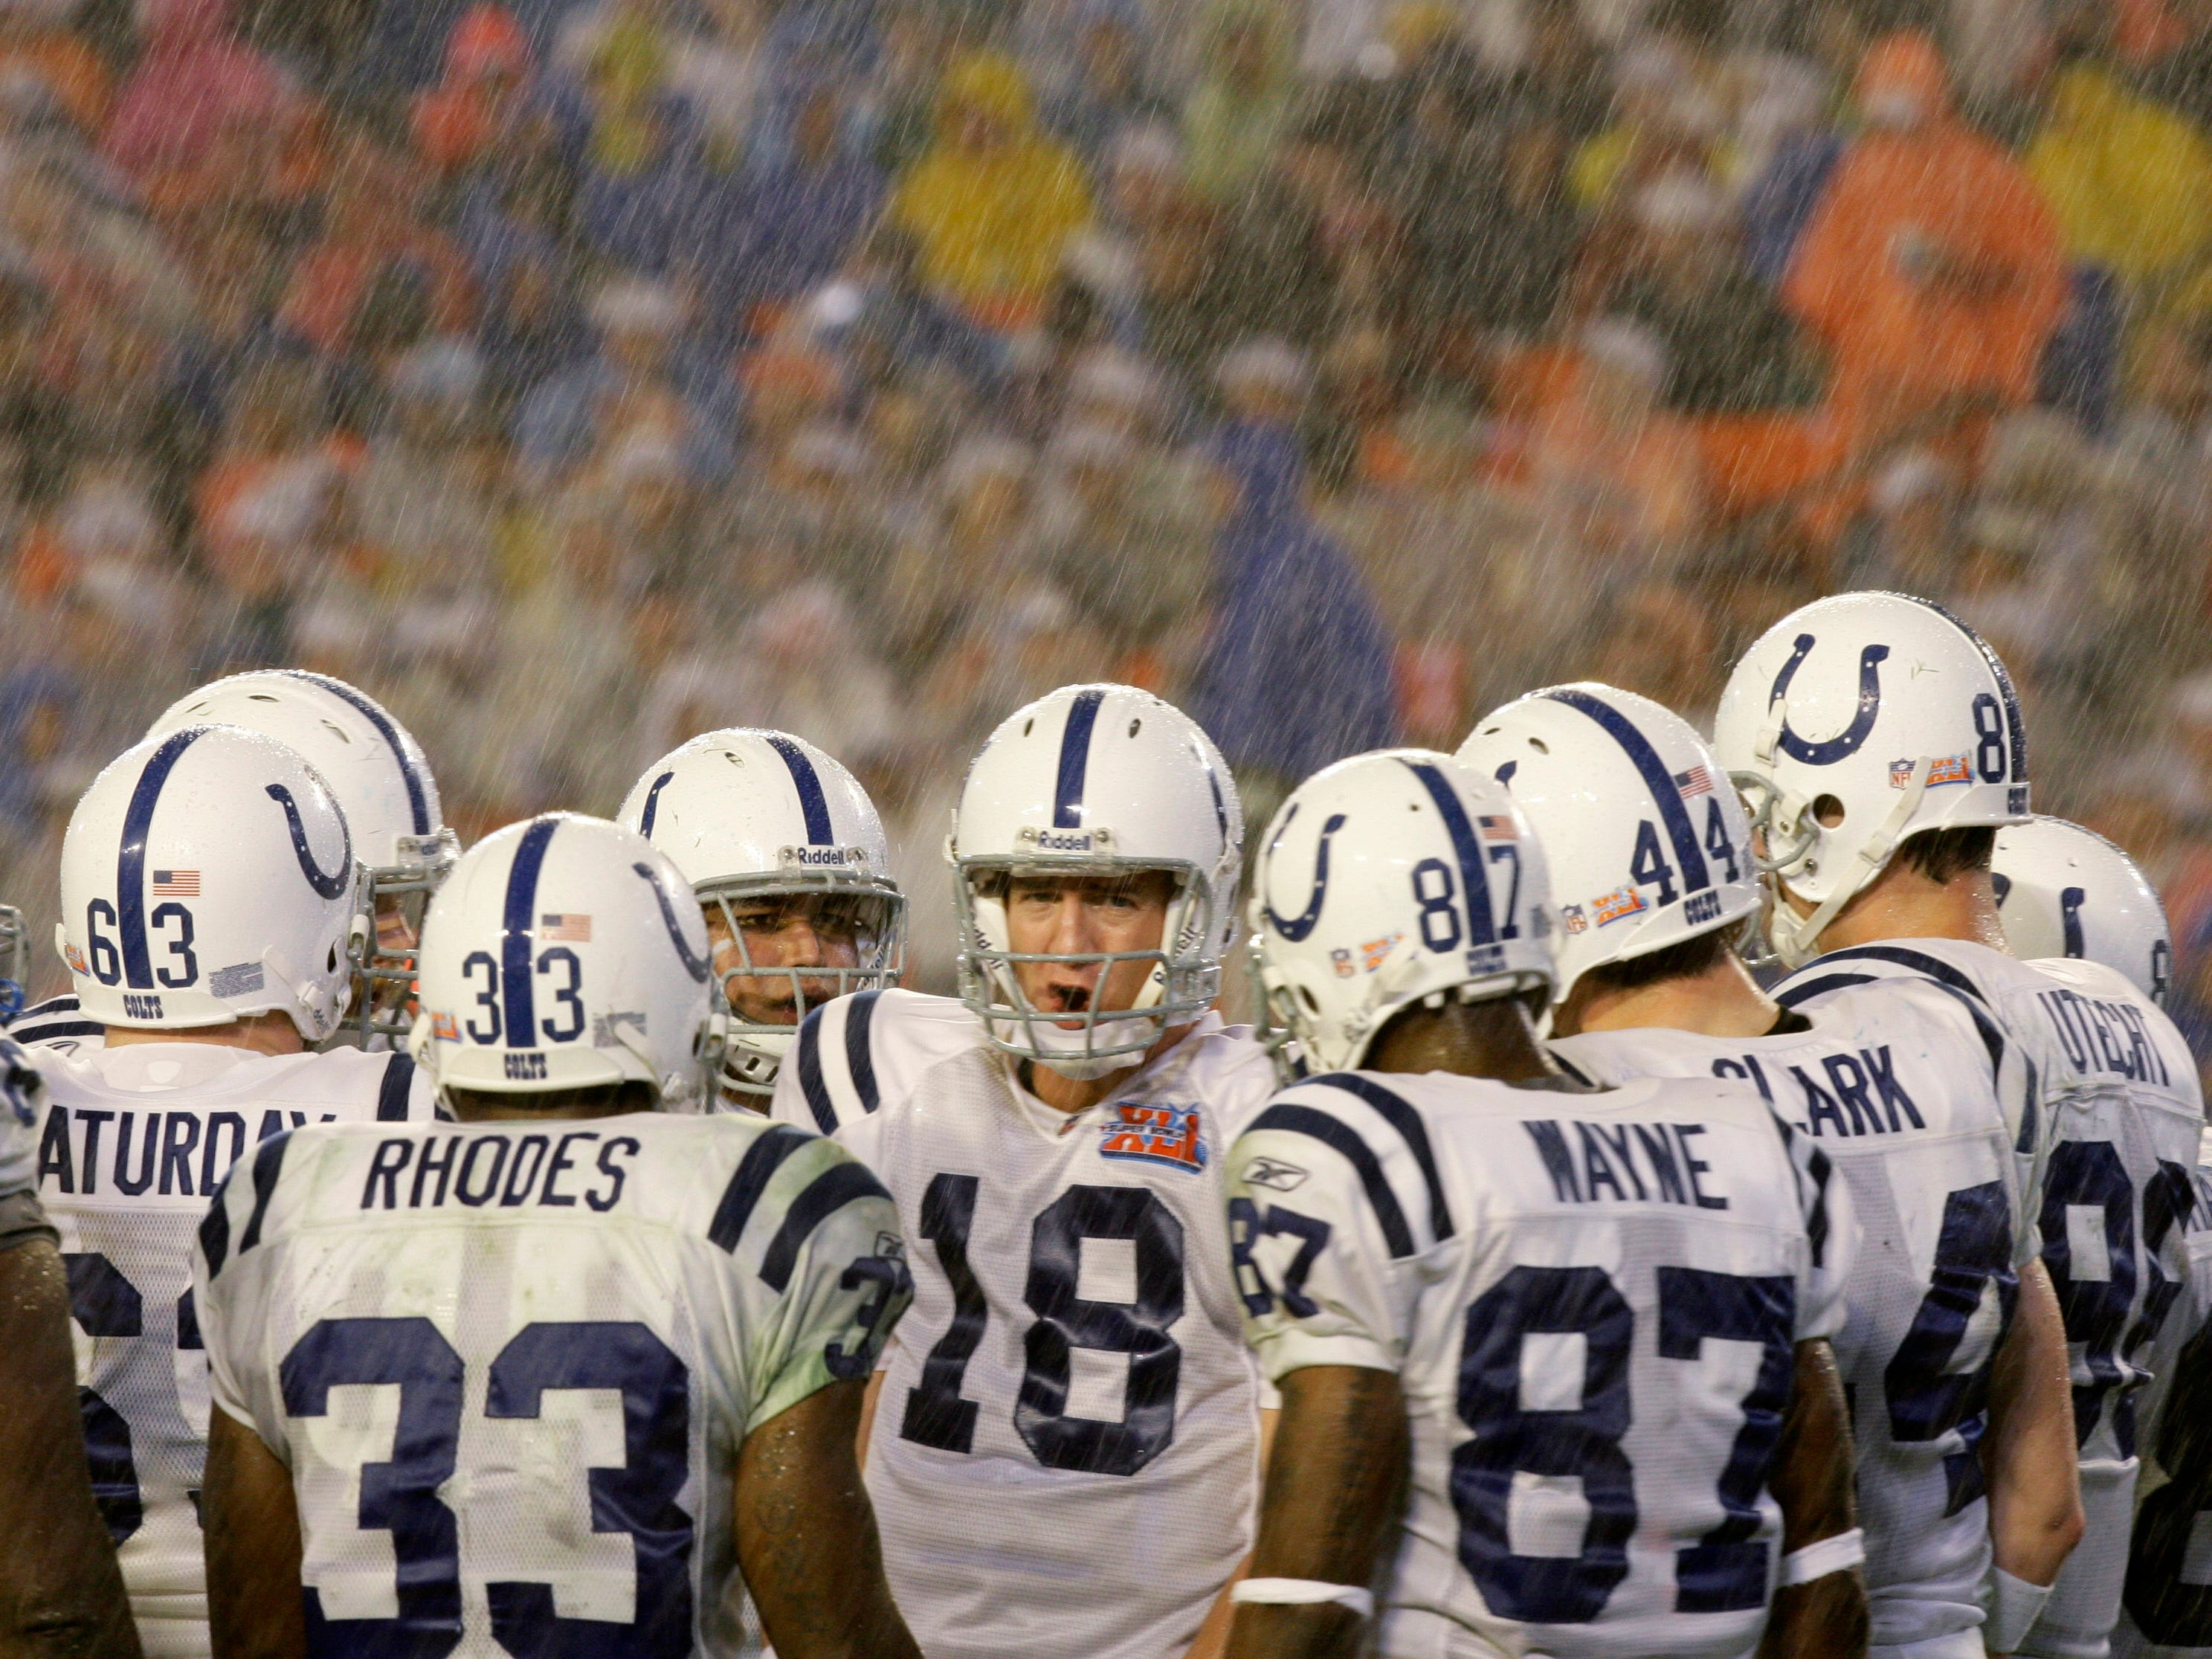 Feb. 4, 2007: Indianapolis Colts quarterback Peyton Manning directs his team in the huddle in the third quarter of the Super Bowl XLI against the Chicago Bears at Dolphin Stadium. The Colts won the game, 29-17, in the first Super Bowl played in the rain.